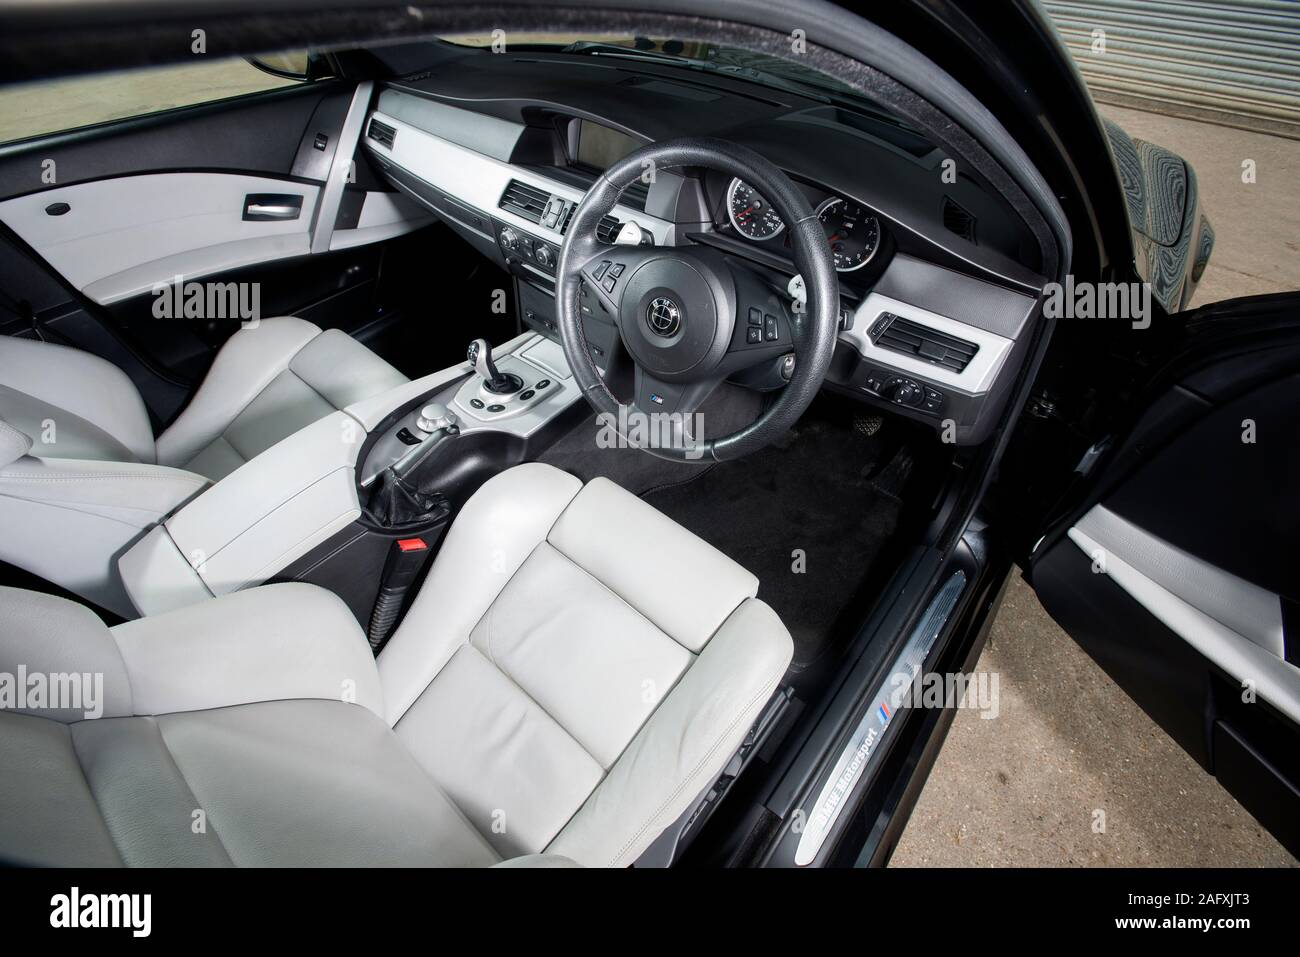 Bmw E60 M5 Super Saloon Stock Photo Alamy